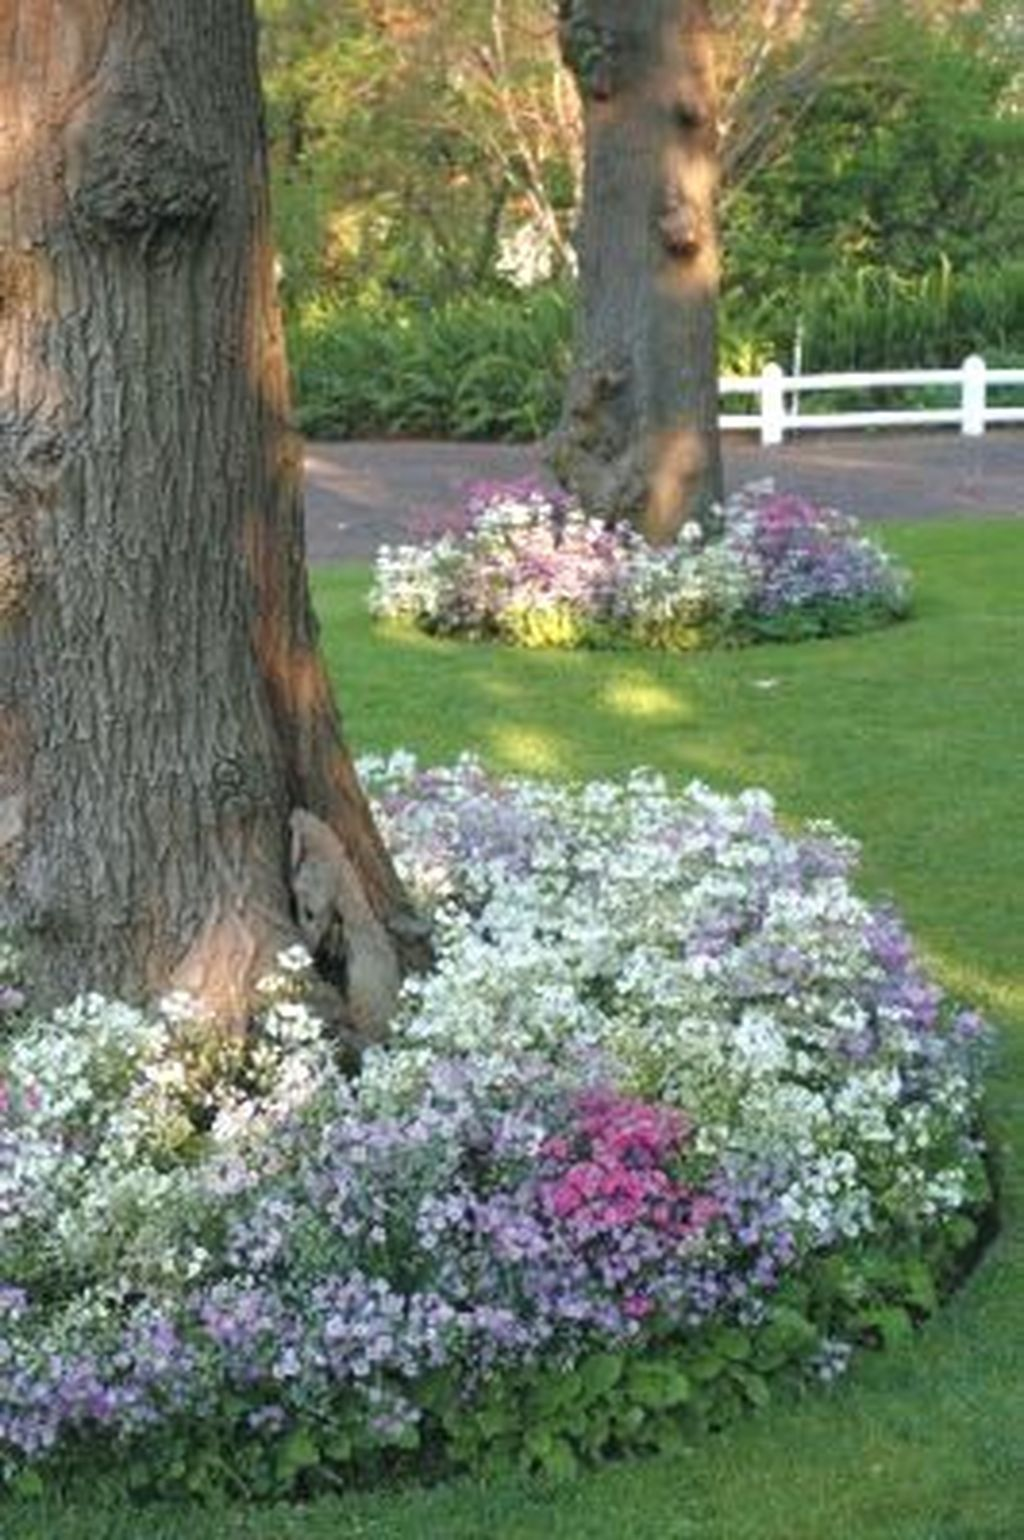 30 Adorable Flower Beds Ideas Around Trees To Beautify Your Yard Landscaping Around Trees Shade Garden Outdoor Gardens